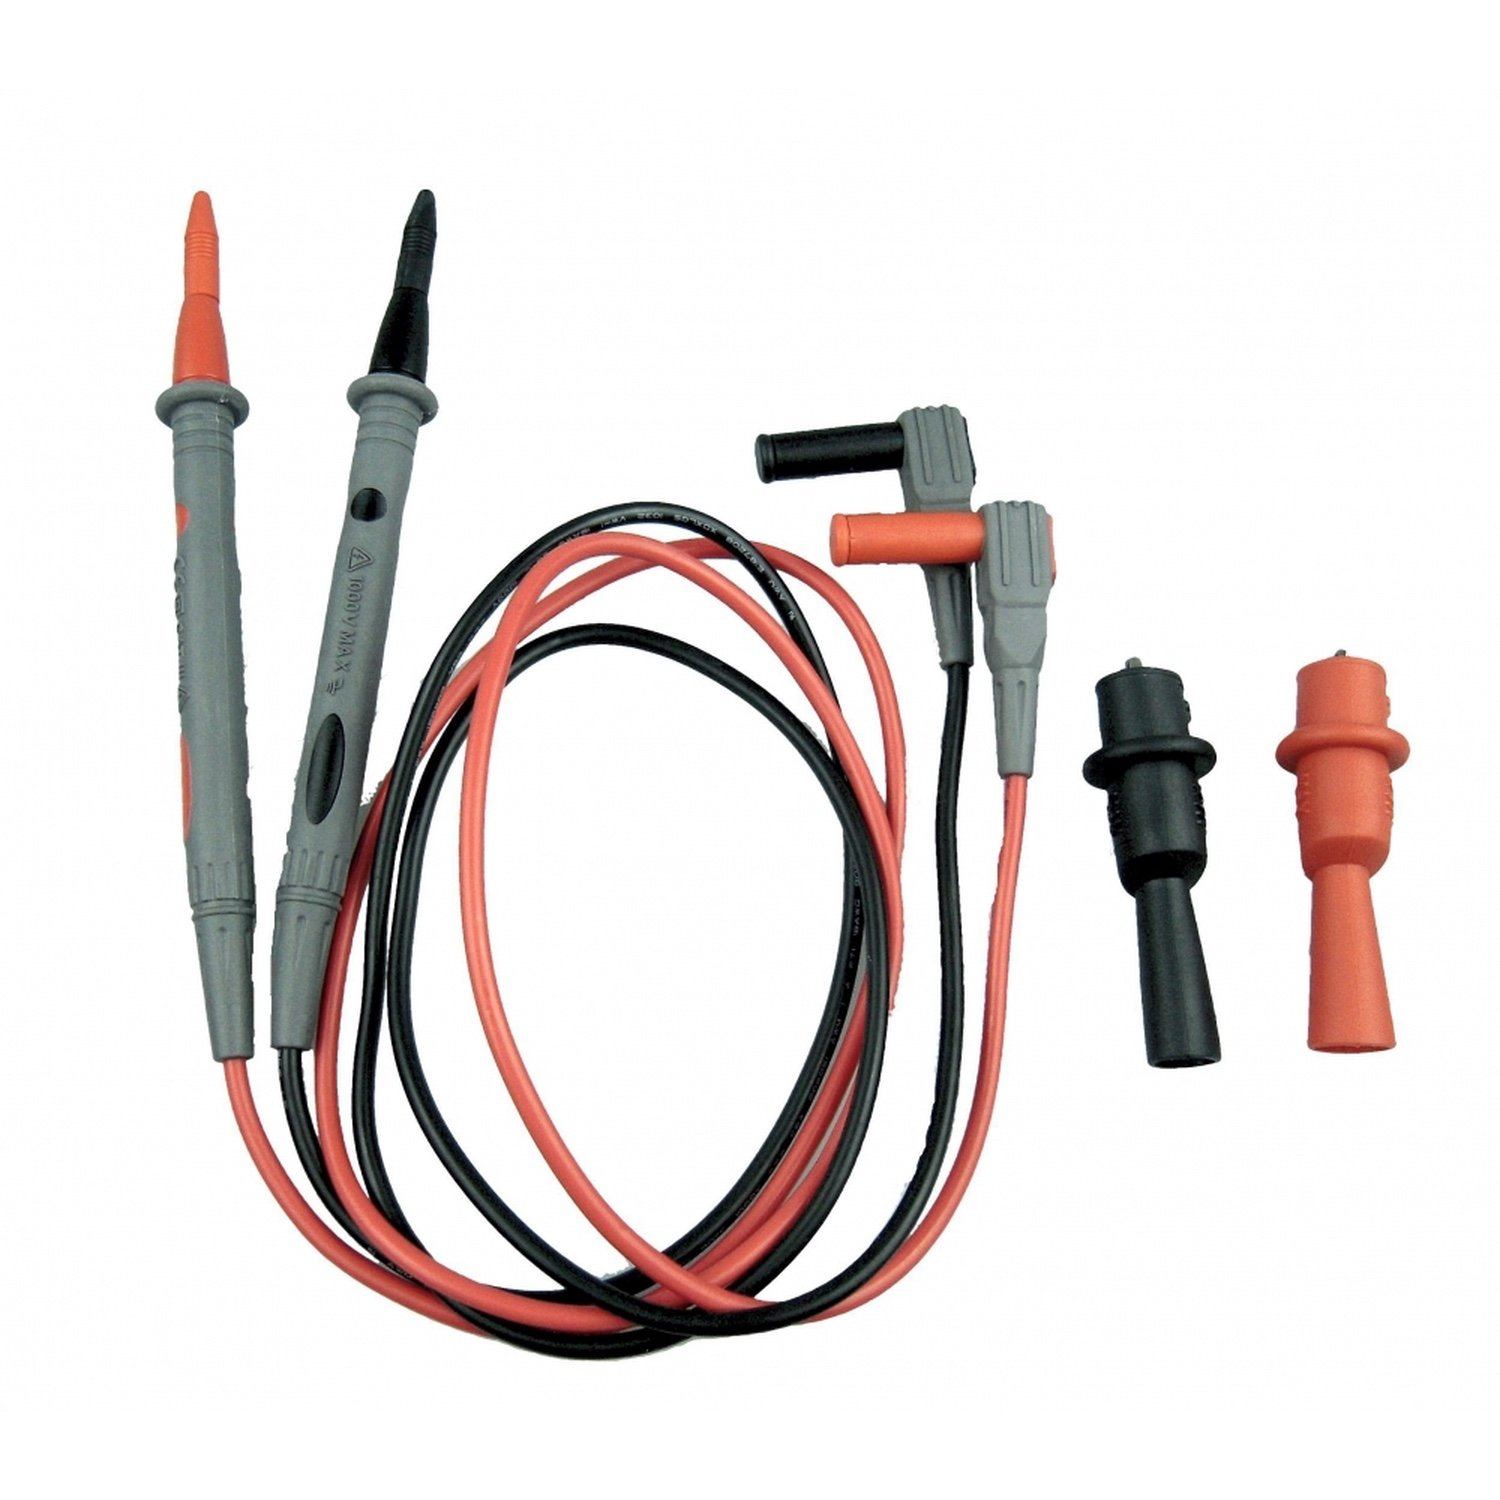 Multimeter cord with alligator clips